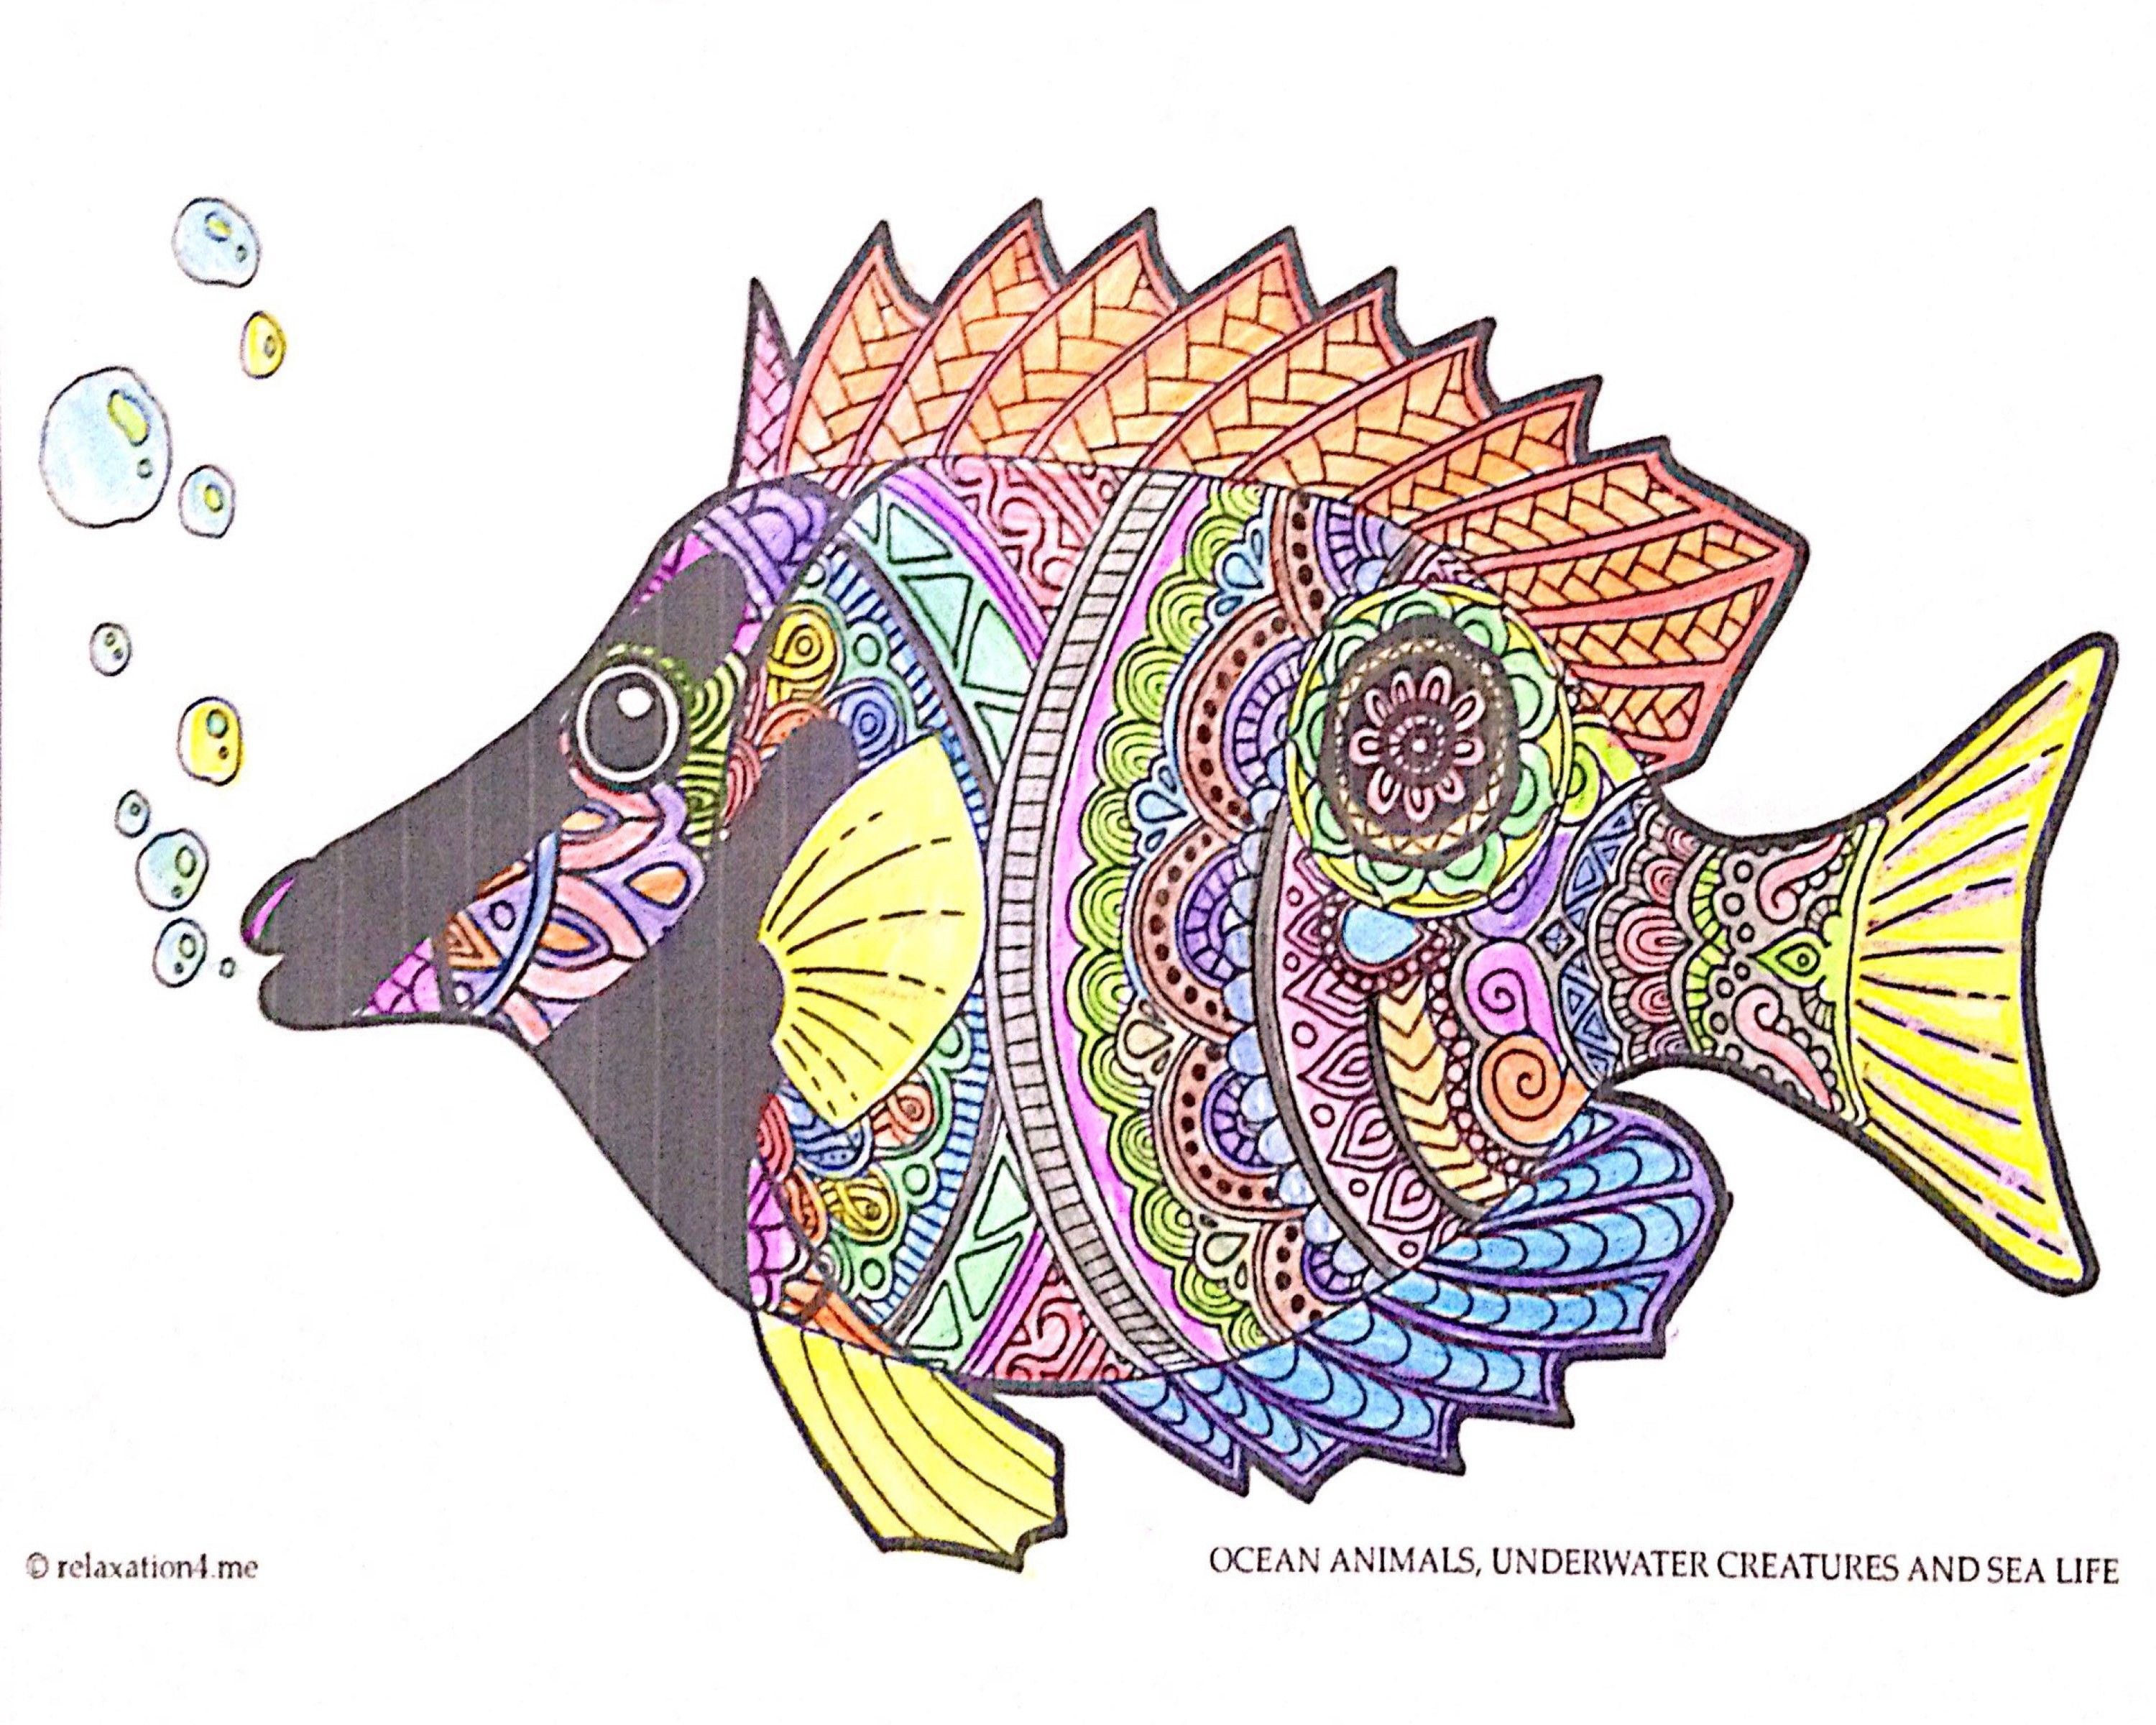 Pin Auf Free Anti Stress Marine Adult Coloring Book Printables Ocean Animals Underwater Creatures And Sea Life Diy Art Therapy